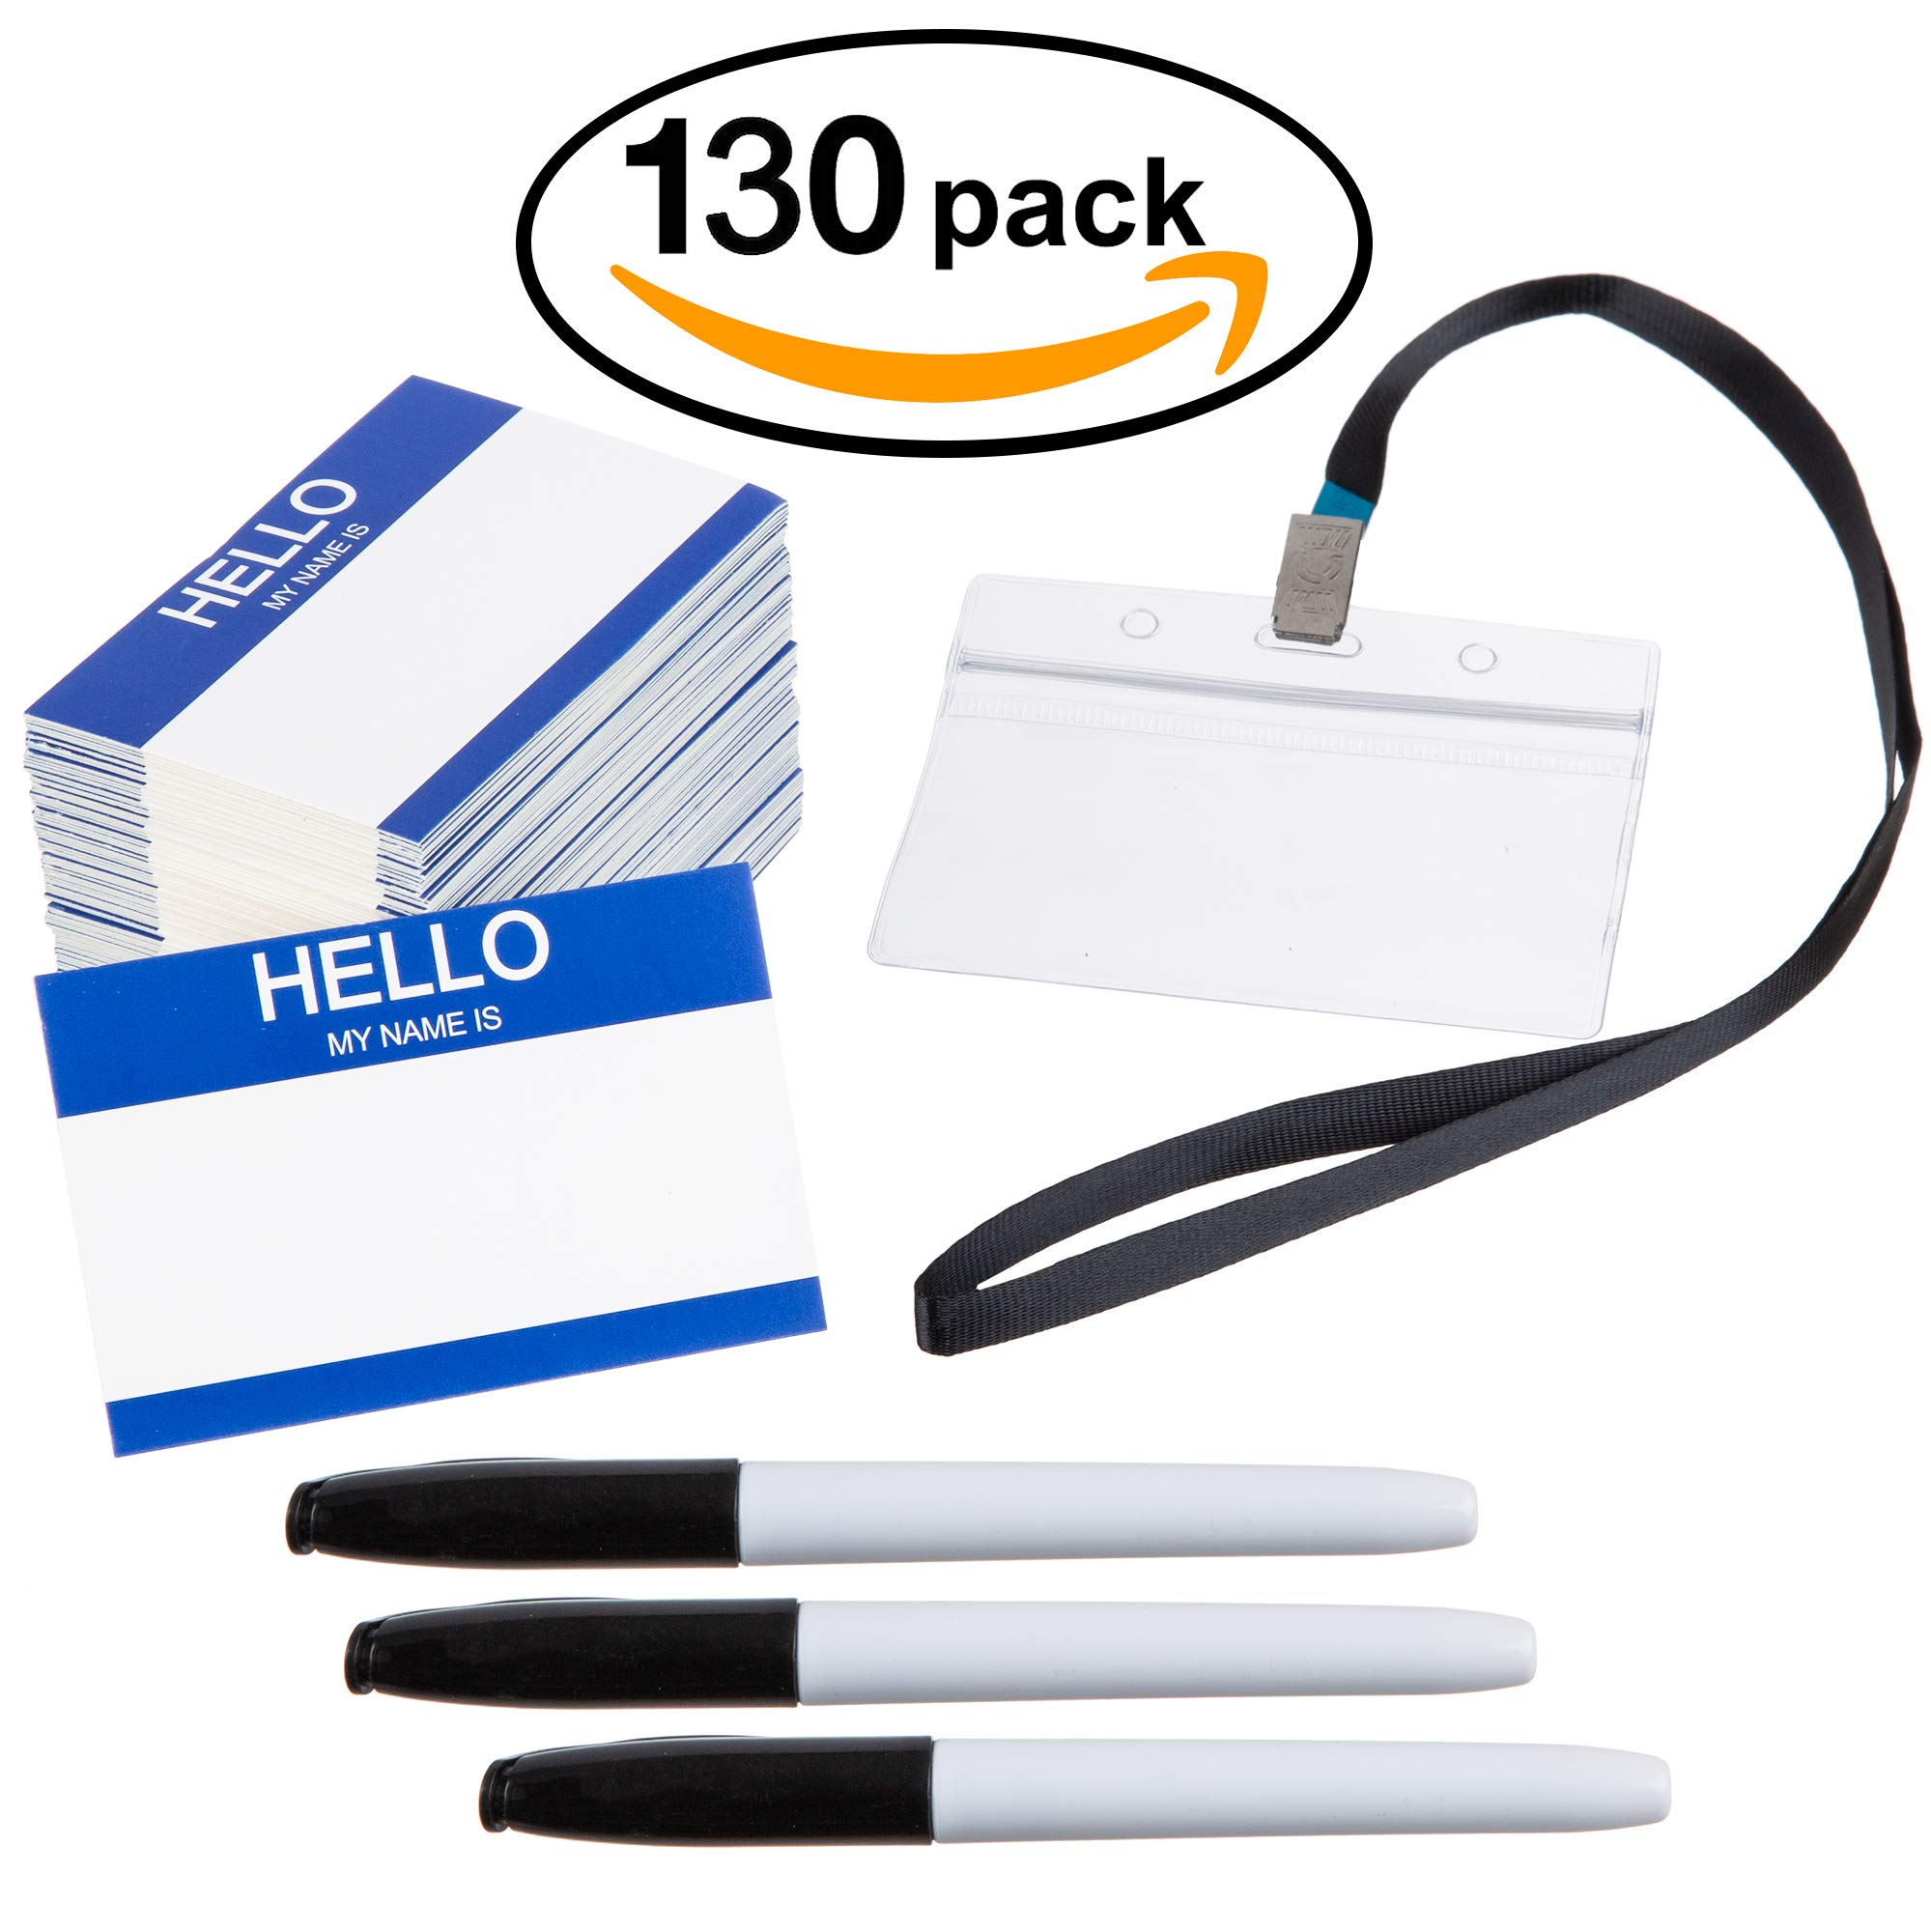 Name Tag ID Badge Holder Lanyards and Pens (130 Sets - Horizontal) - Waterproof Plastic for Business Events and Conferences